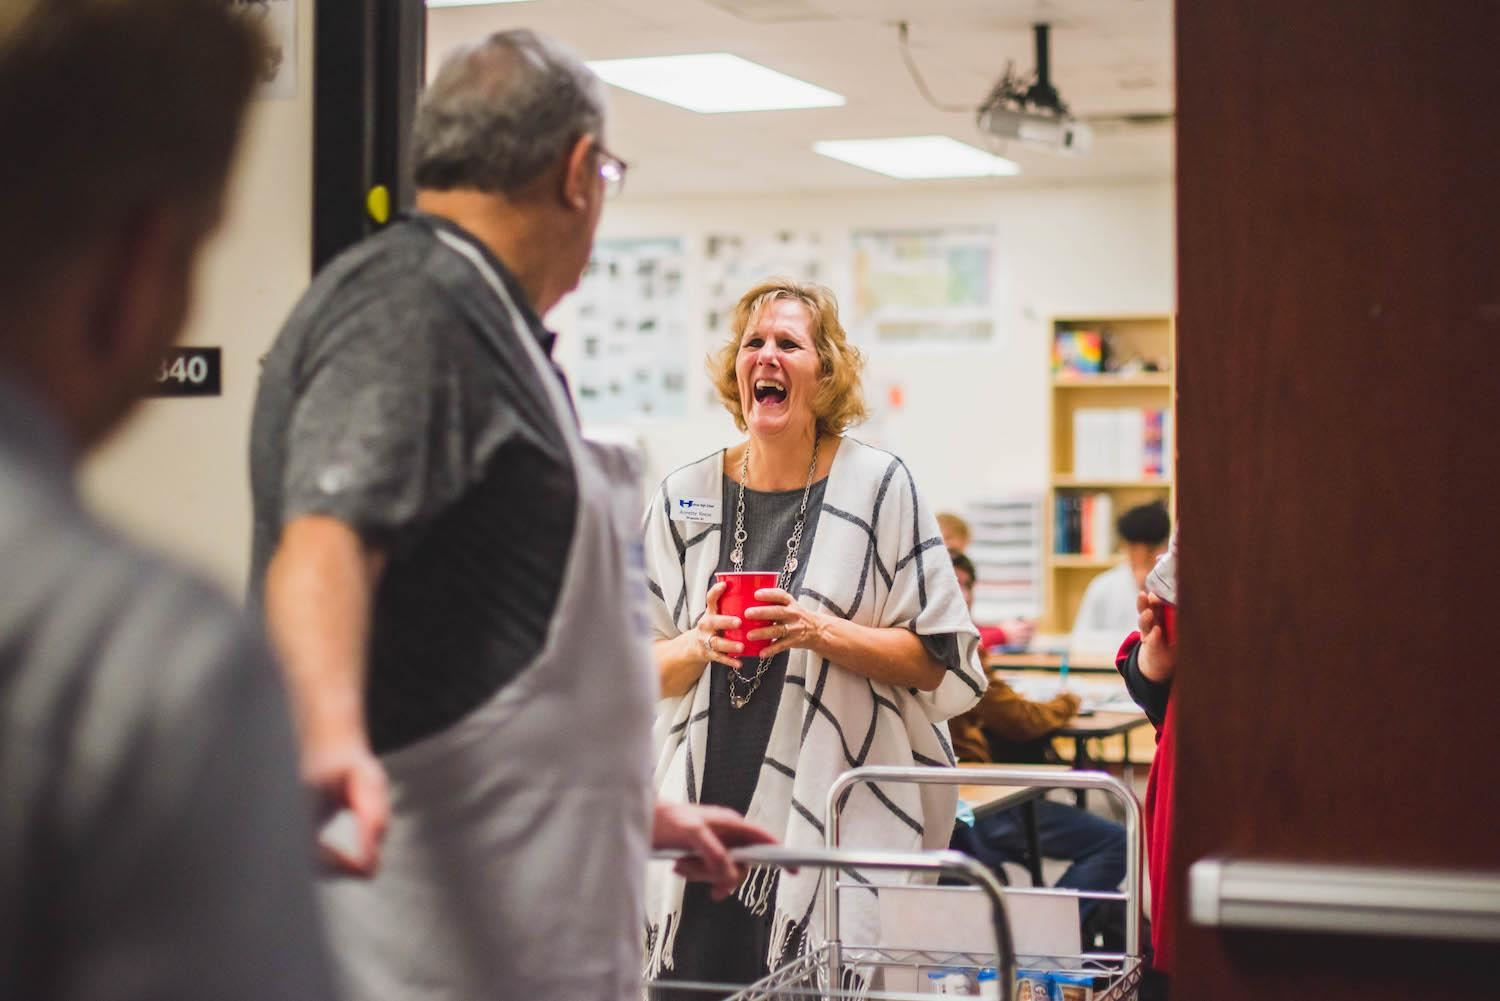 Teacher surprised by treat trolley